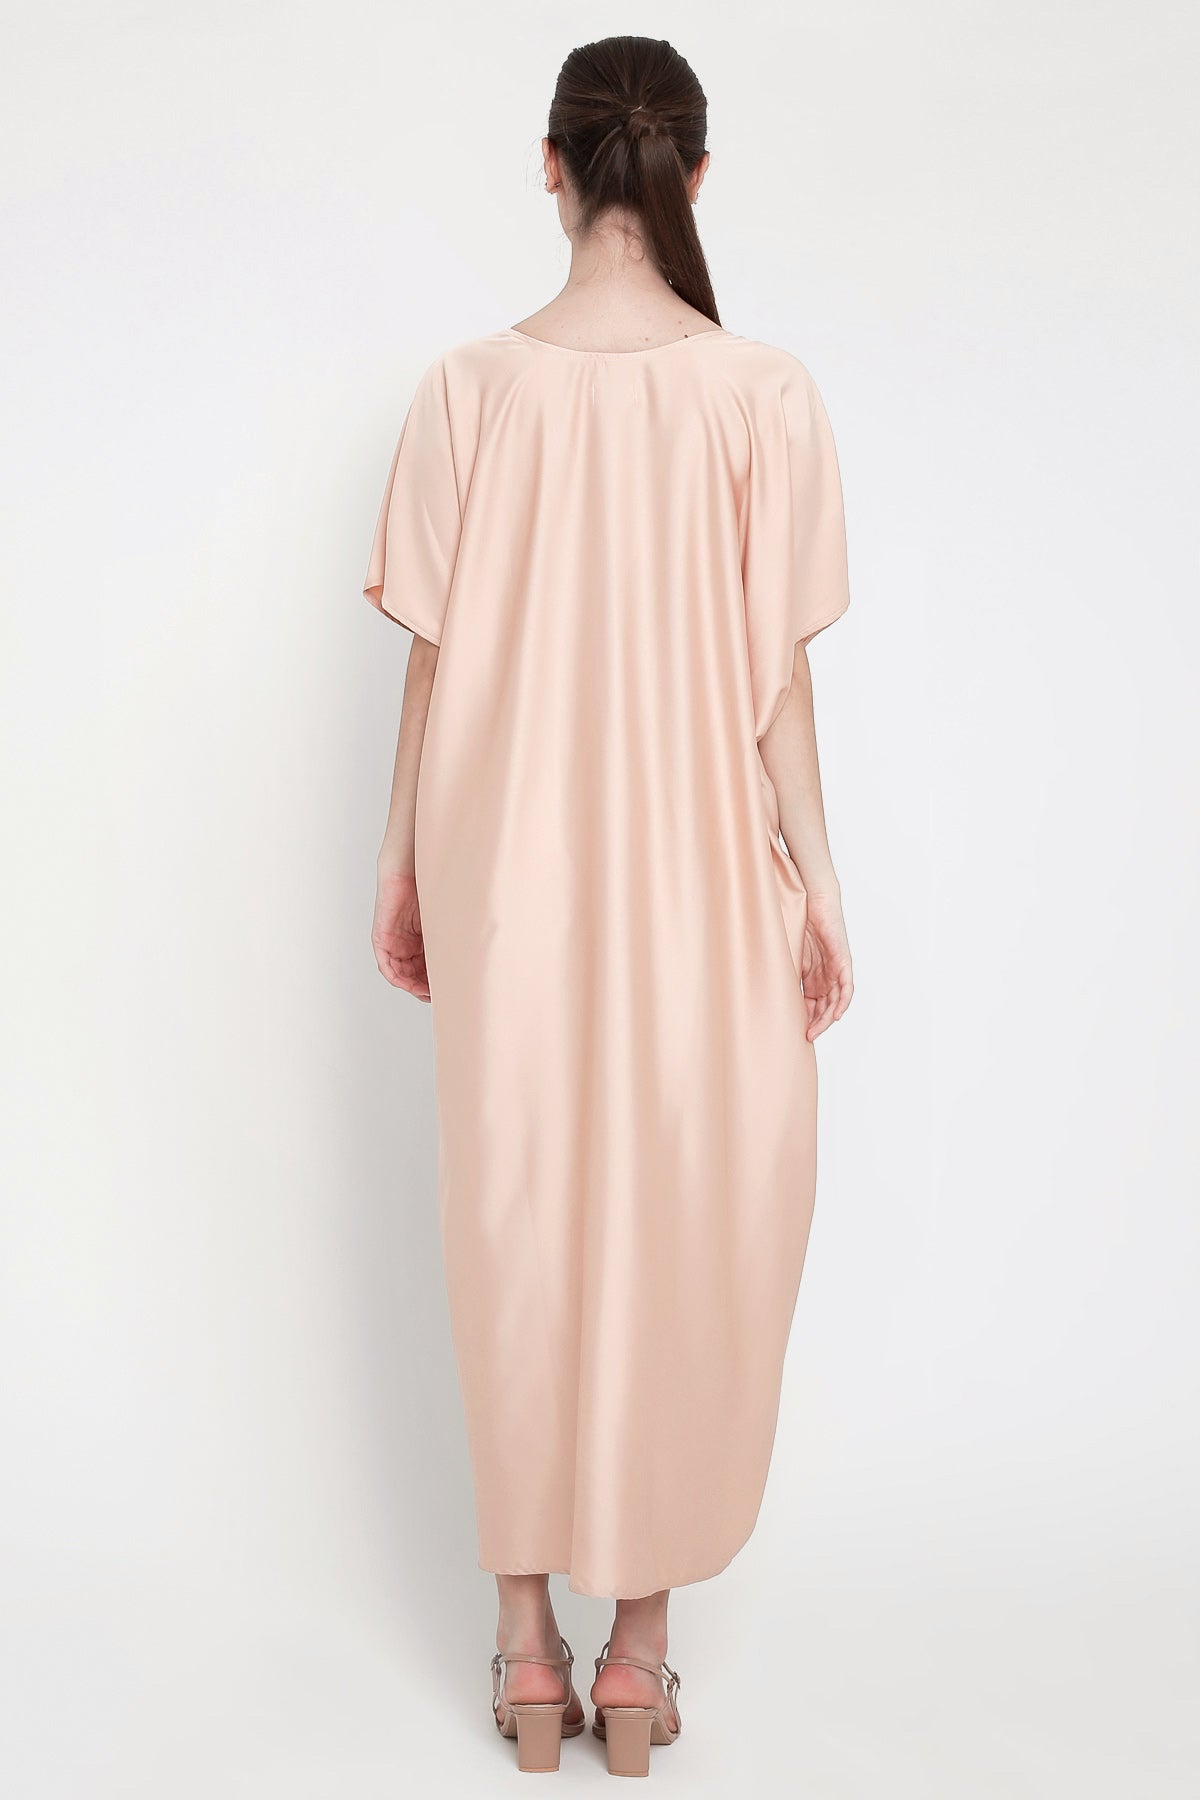 Maharani Kaftan Dress in Dark Nude